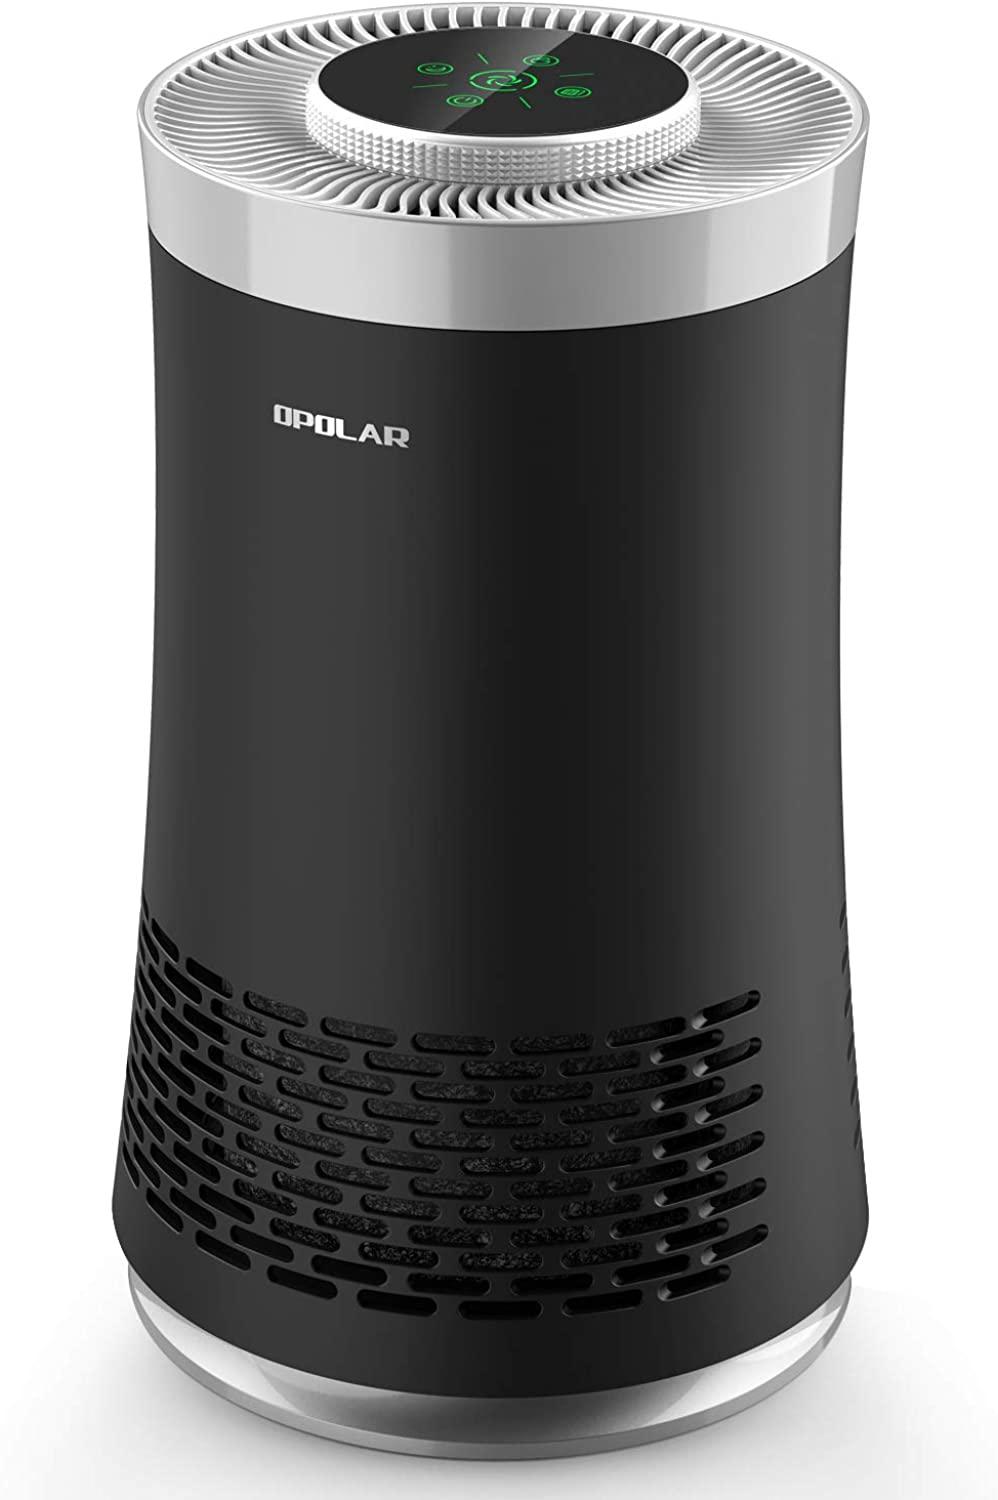 OPOLAR Air Purifier with for Medium-size Room with HEPA Filter & Smart Sensor, Sleep Mode & Quiet, 50 CFM, 3-in-1 Portable Air Cleaner Odor Eliminator for Smokers, Dust, Mold, Pets, for 103 sq.Ft